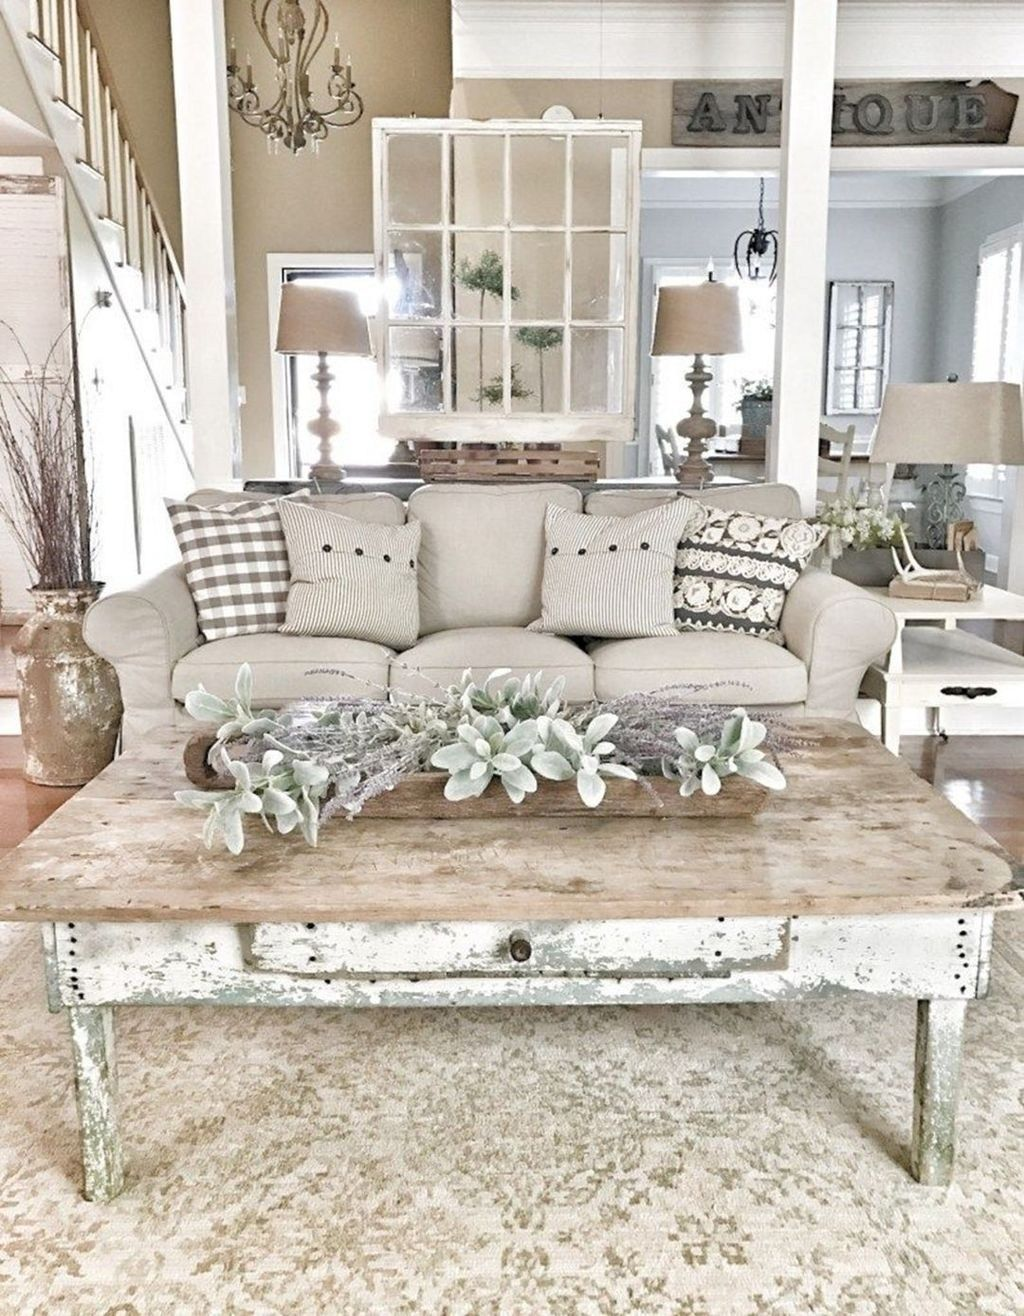 Cozy Farmhouse Living Room Decor Ideas 11 Modern Farmhouse